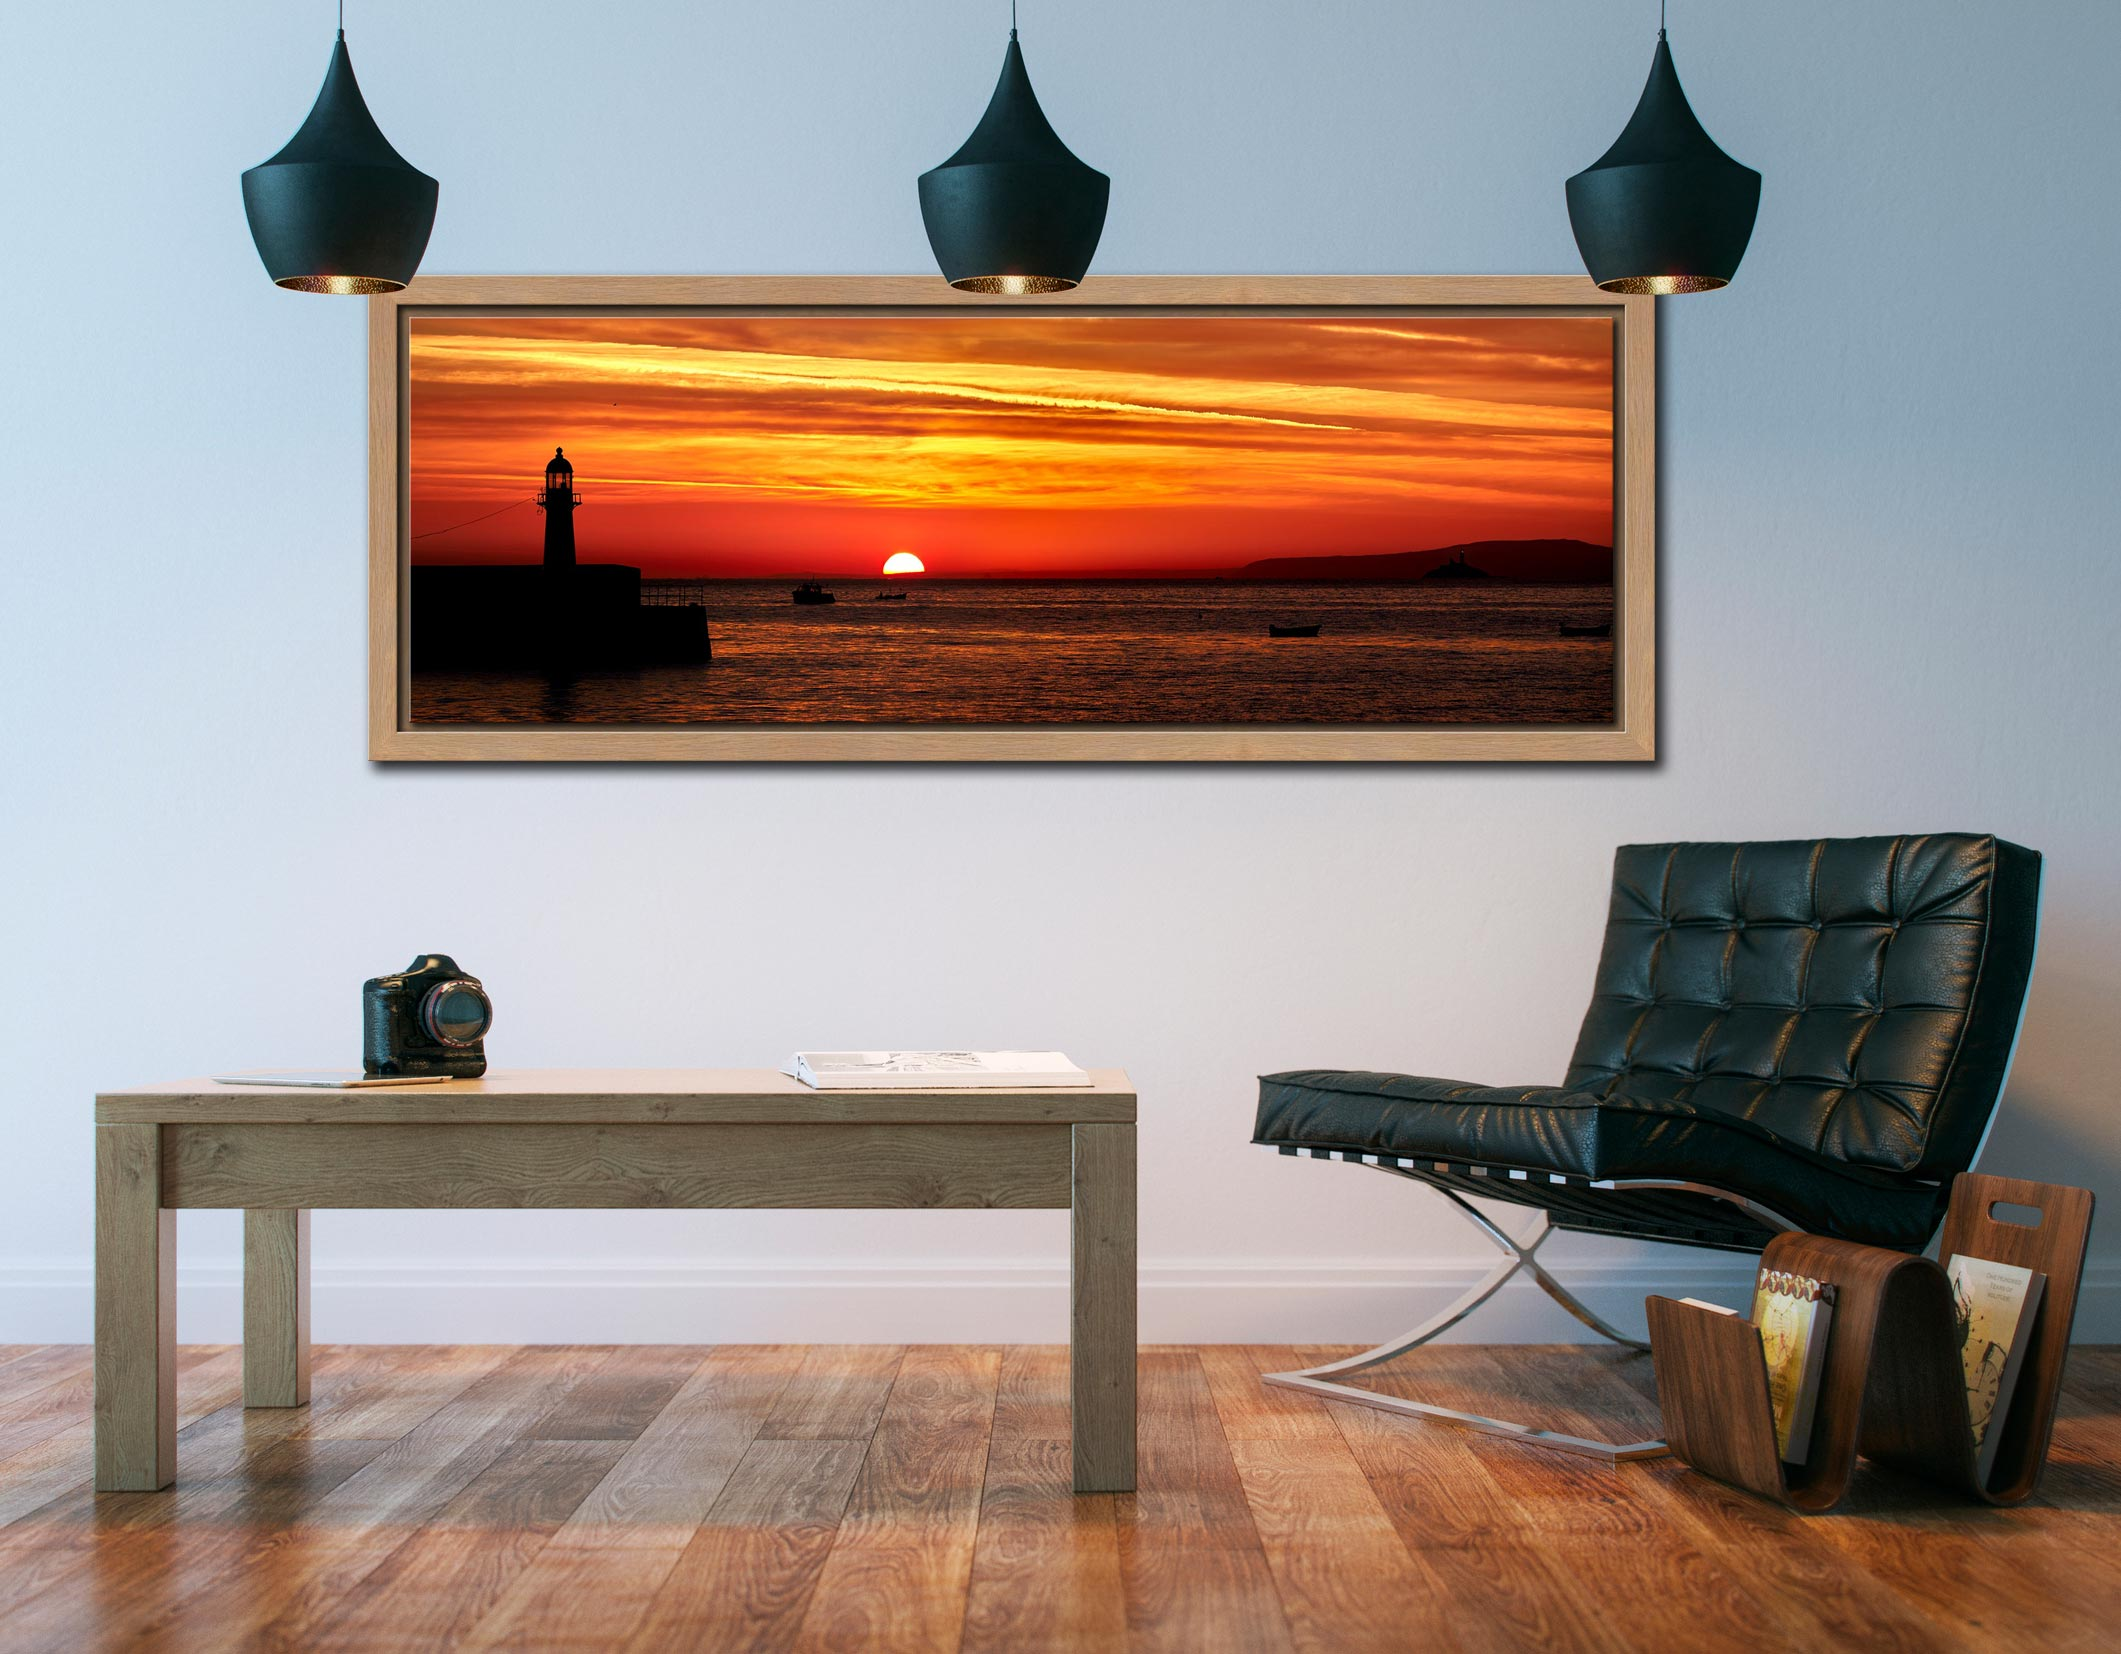 The peeking over the horizon in St Ives Bay in Cornwall. Golden skies above Smeaton's Pier and Godrevy Lighthouse - Oak floater frame with acrylic glazing on Wall